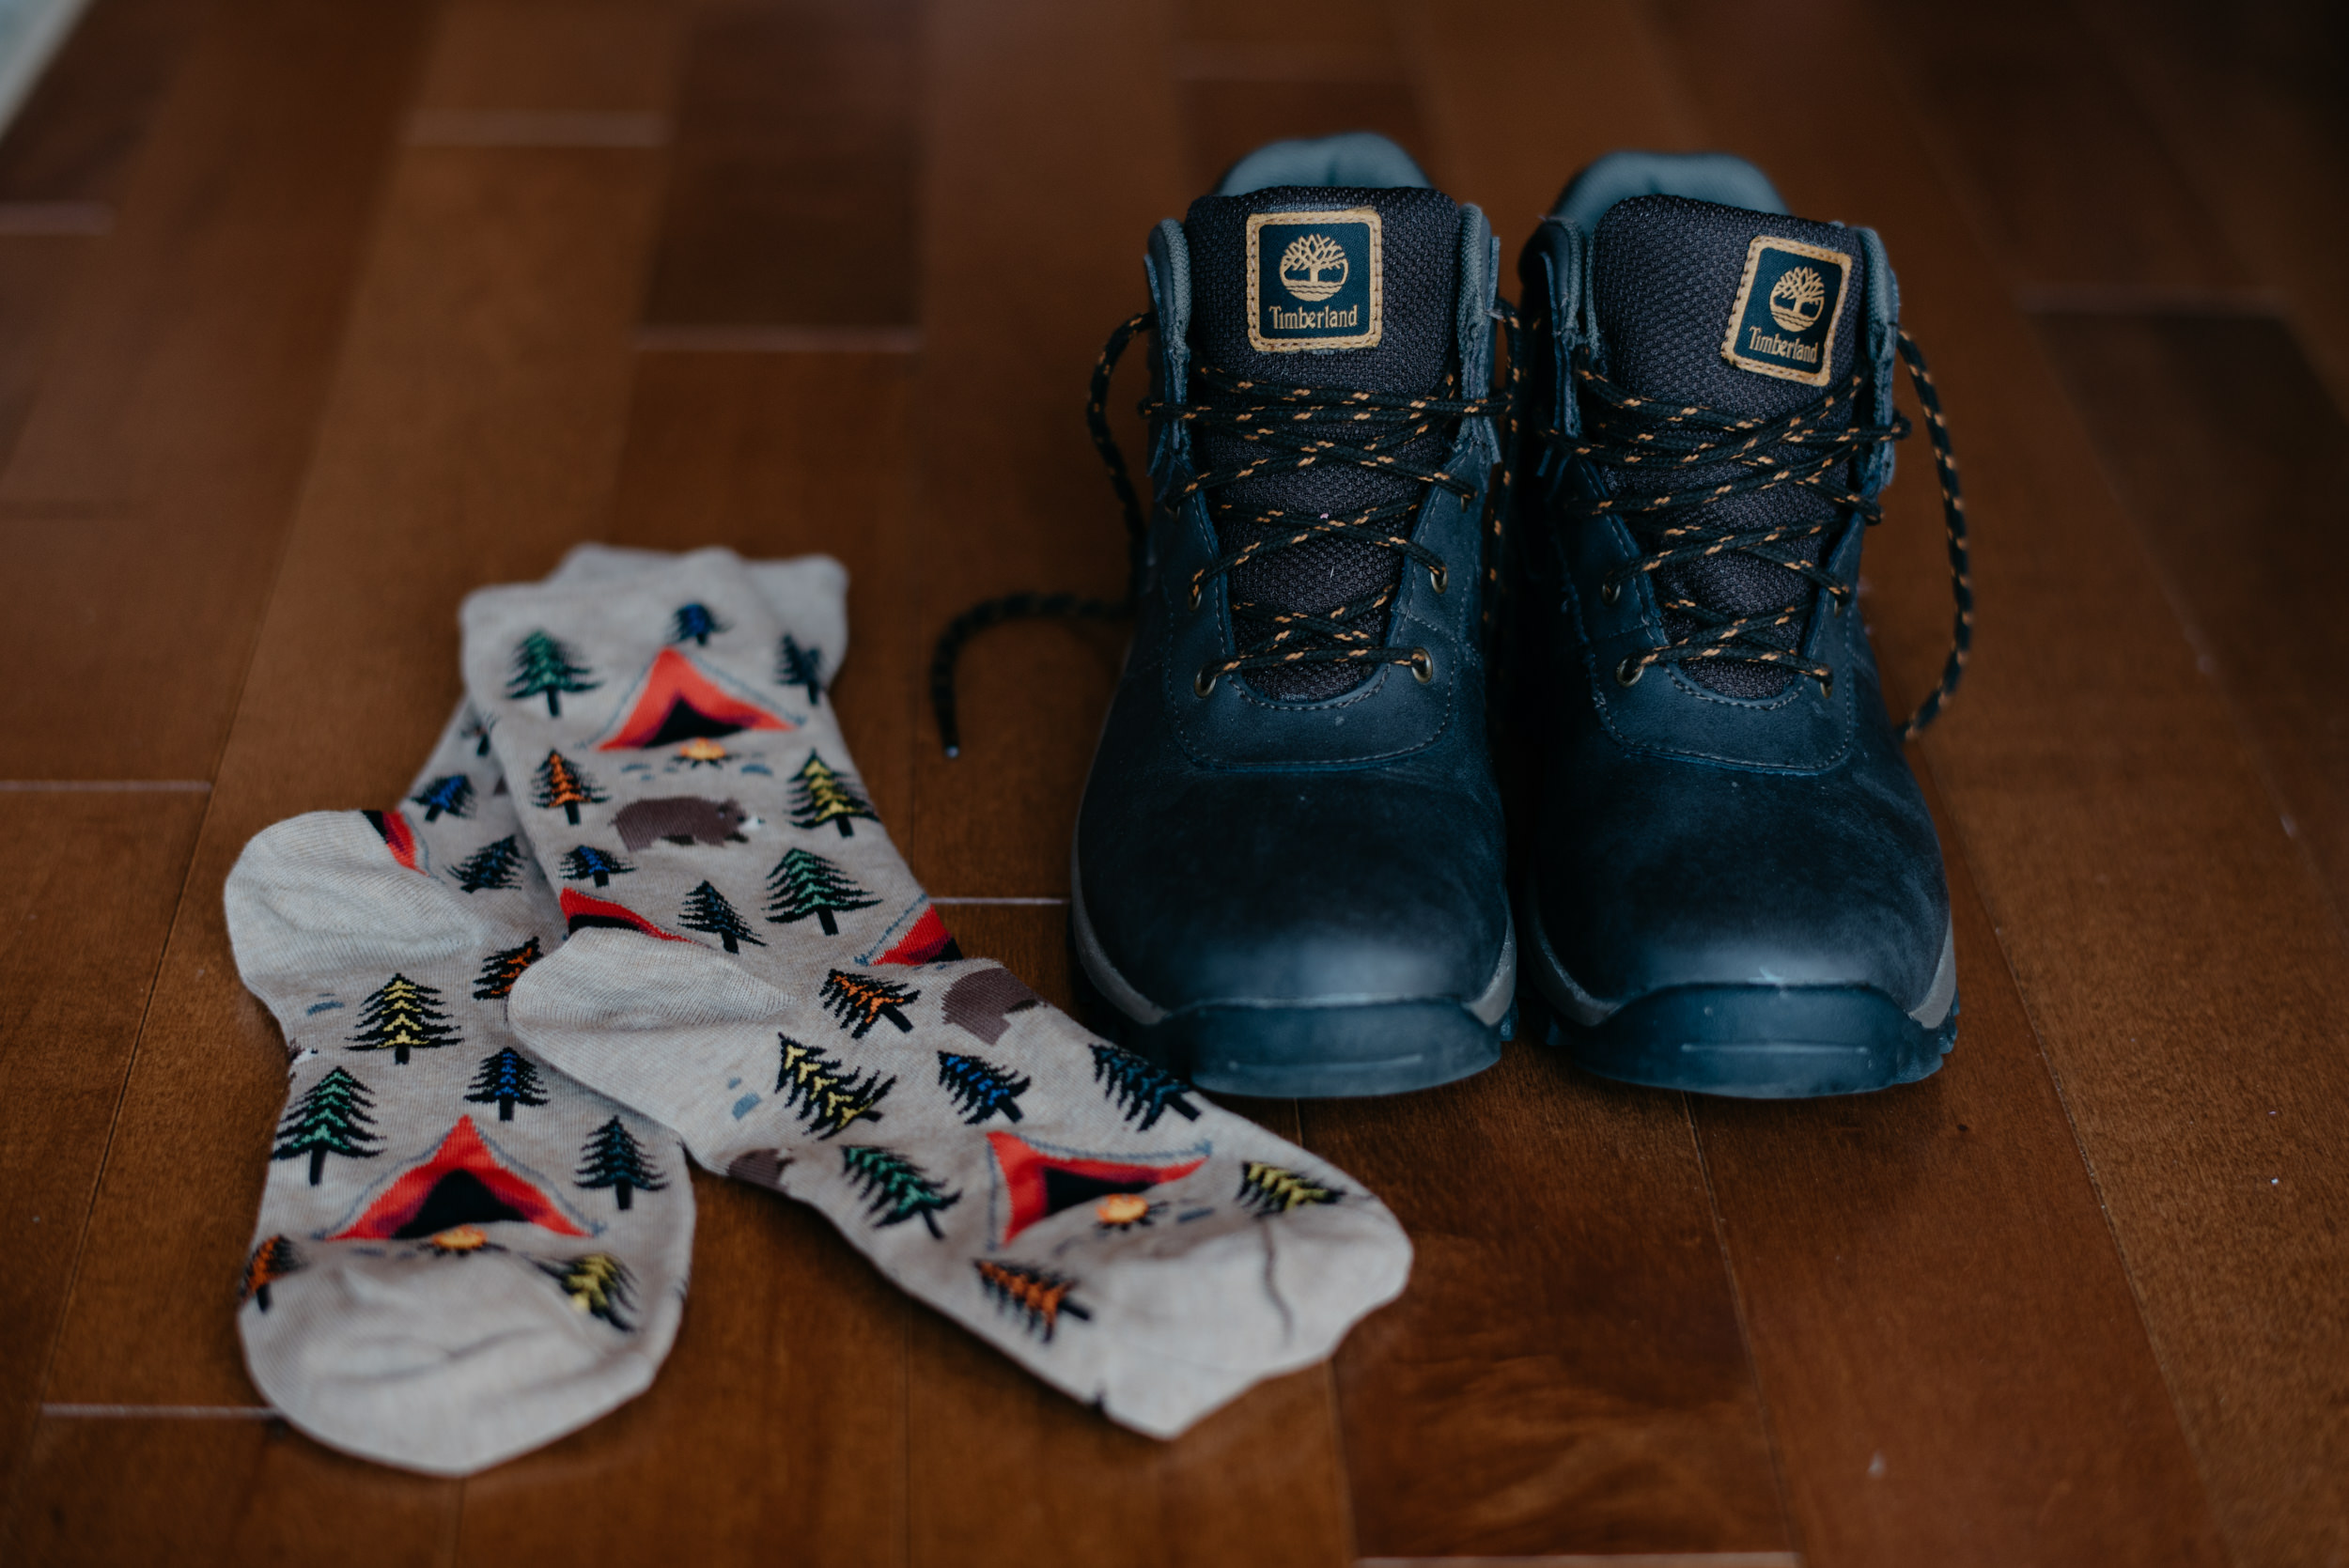 Hiking boots worn to ceremony in Rocky Mountain National Park.